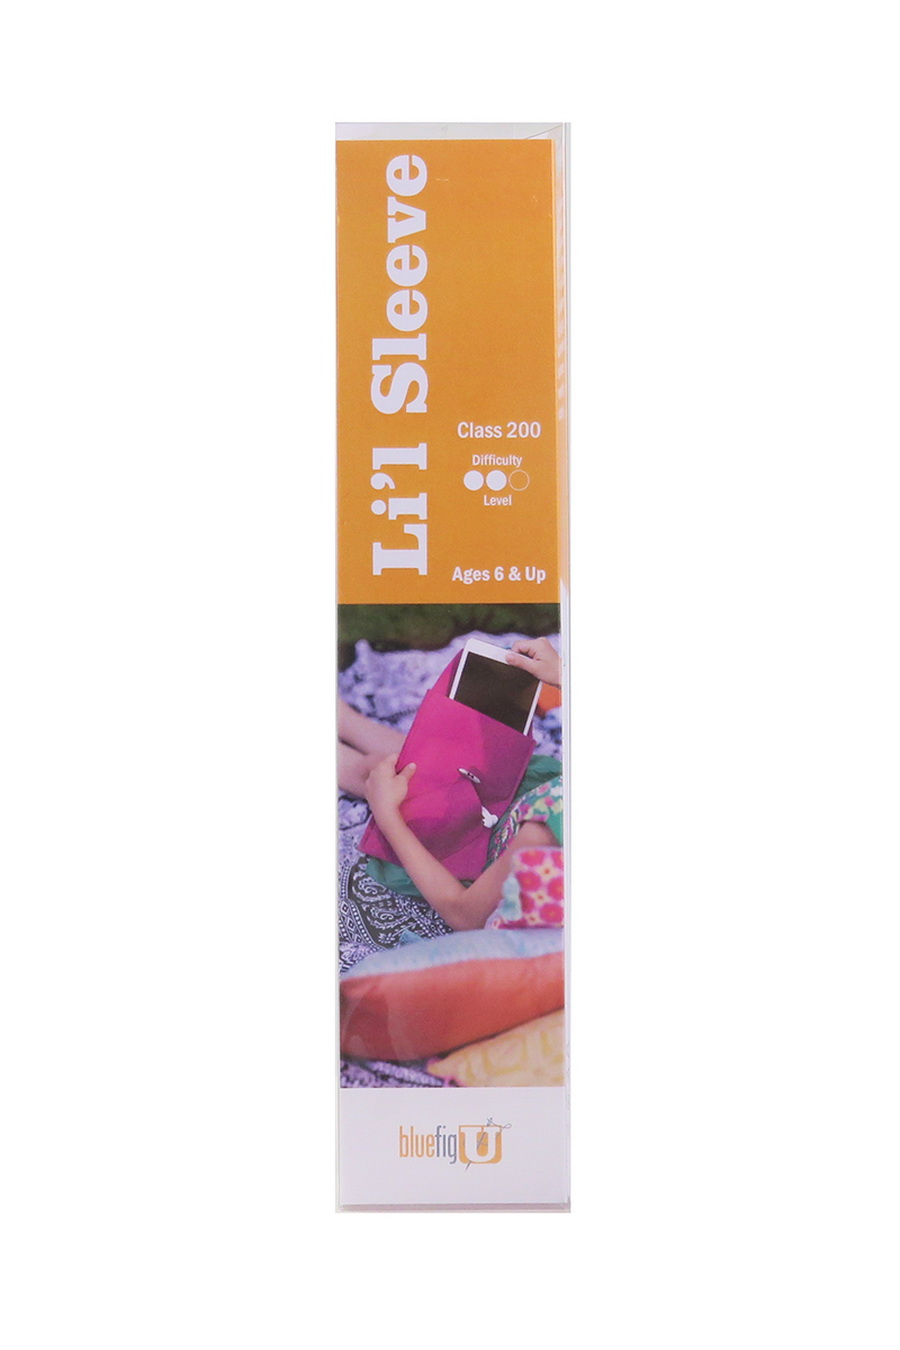 Bluefig University Learn to Sew Kit - Lil Sleeve Class 200